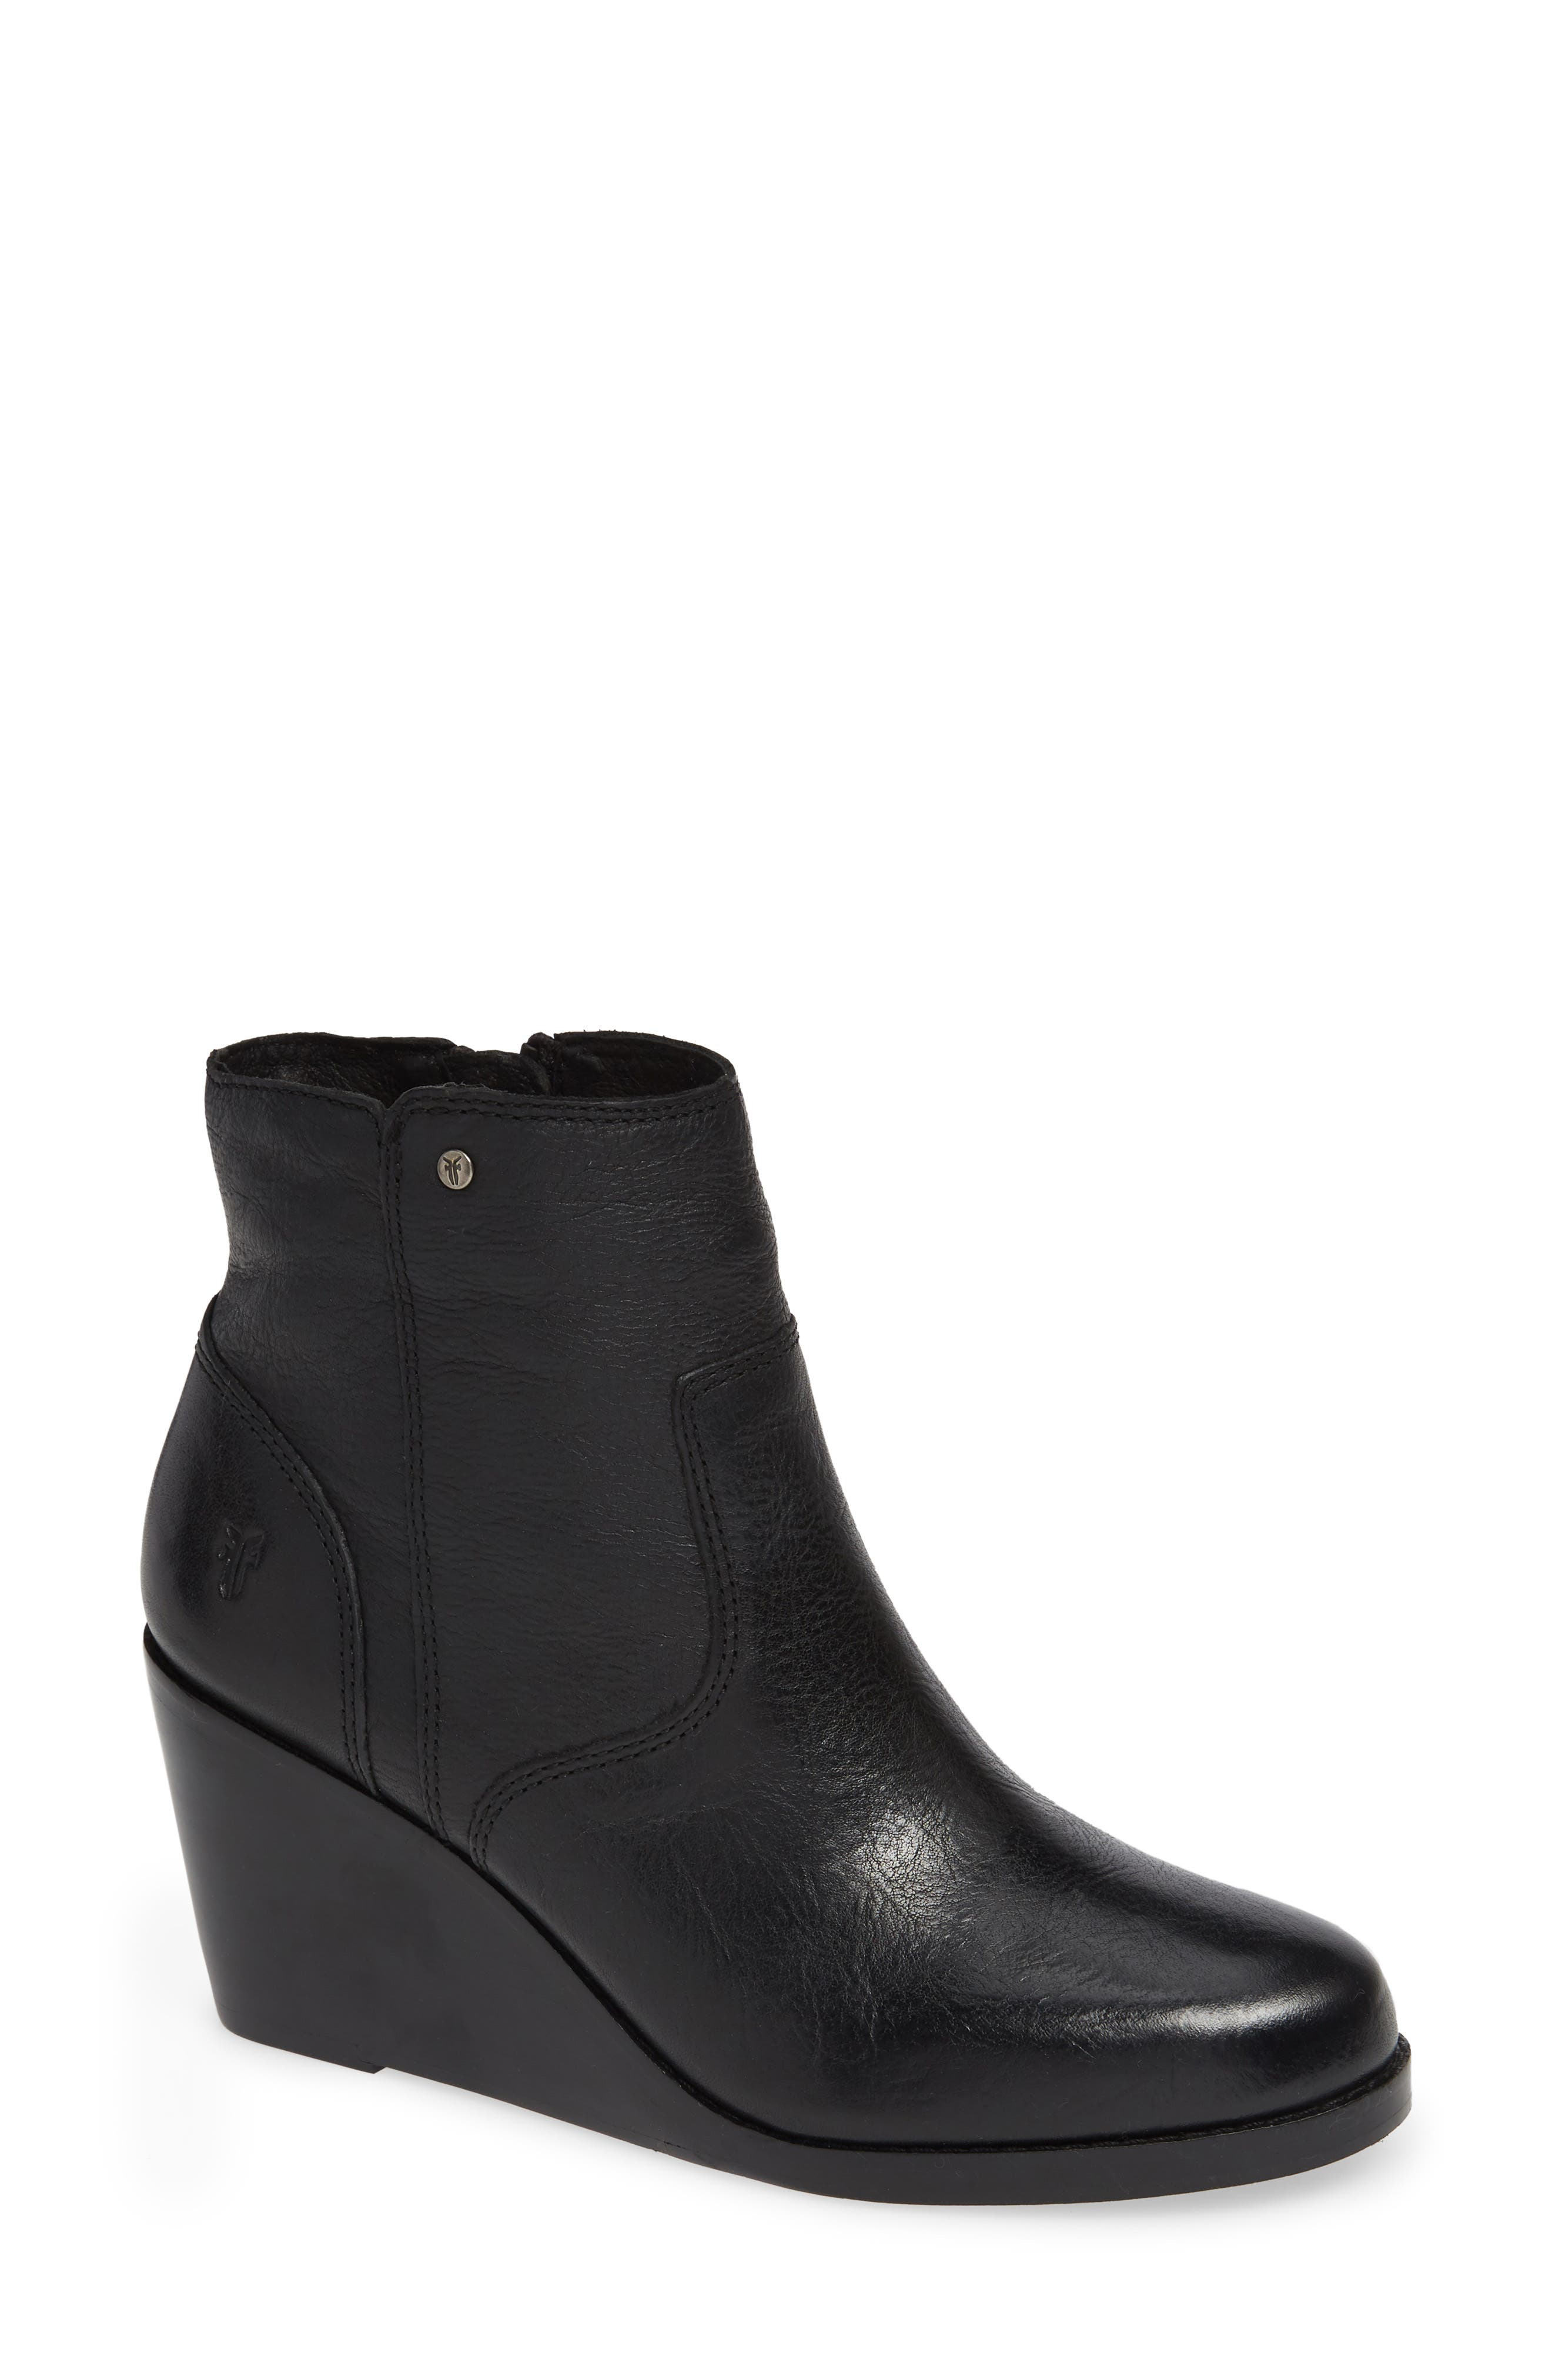 Emma Wedge Bootie,                             Main thumbnail 1, color,                             BLACK LEATHER